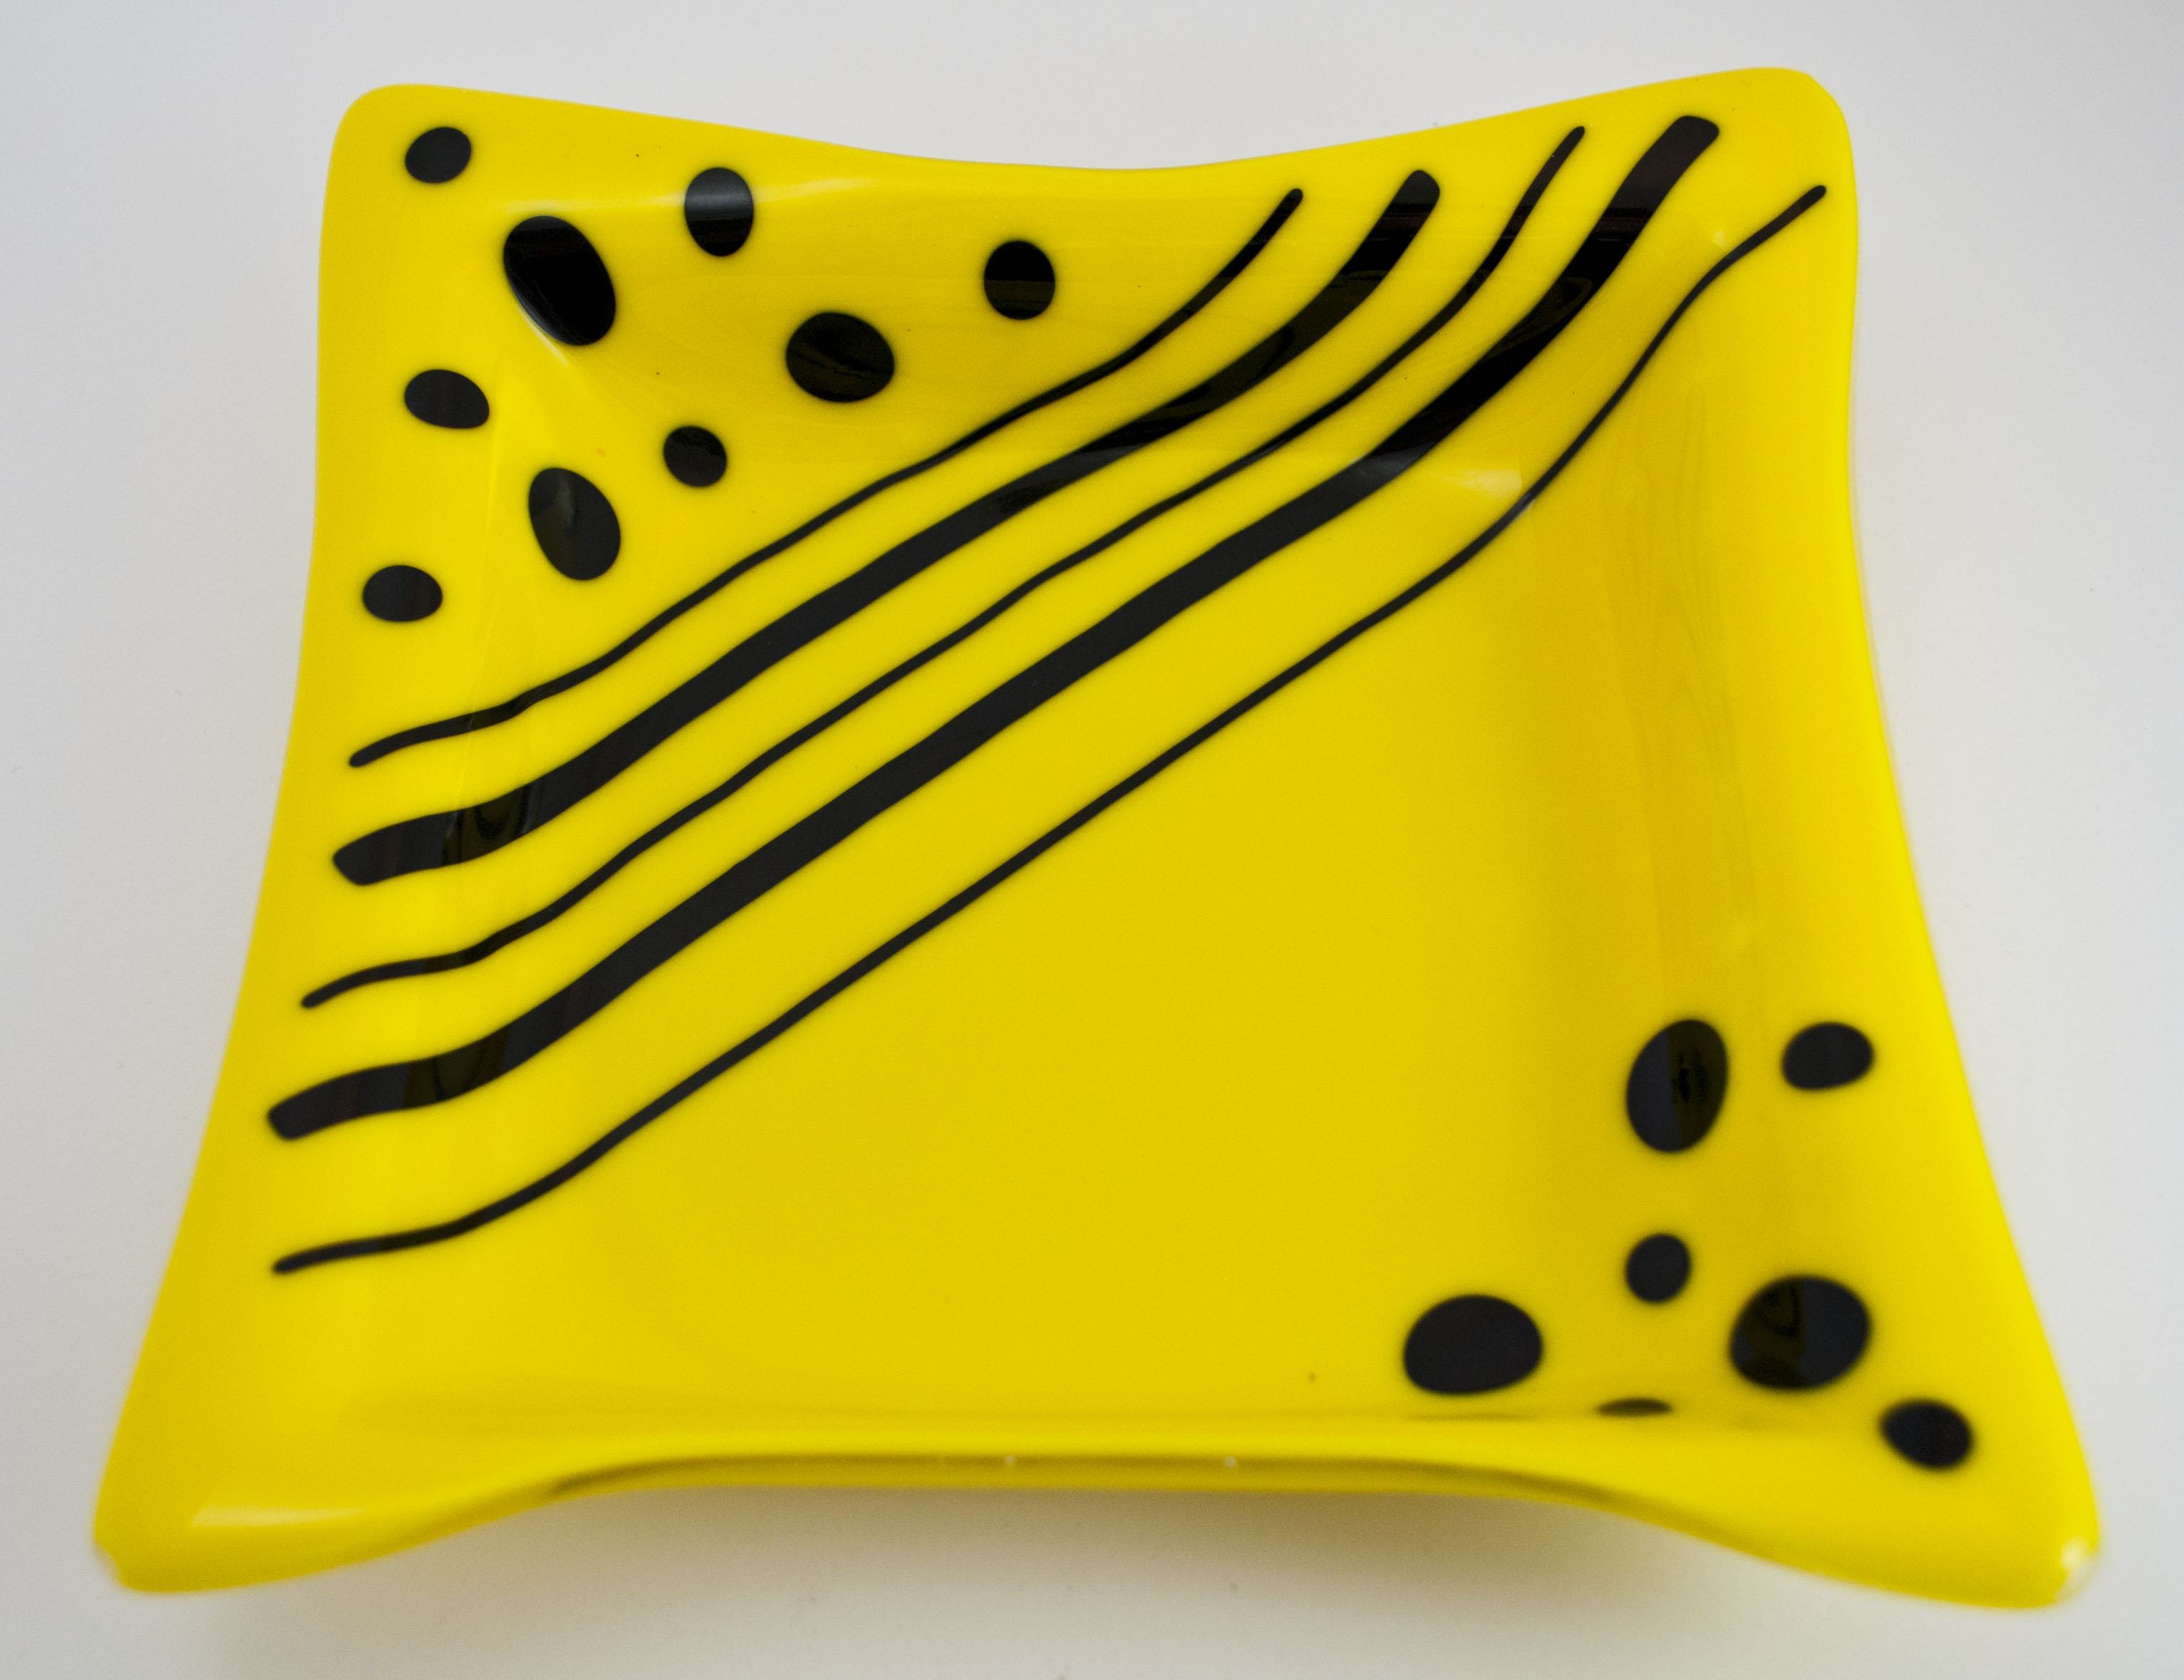 Yellow dish with black dots stripes